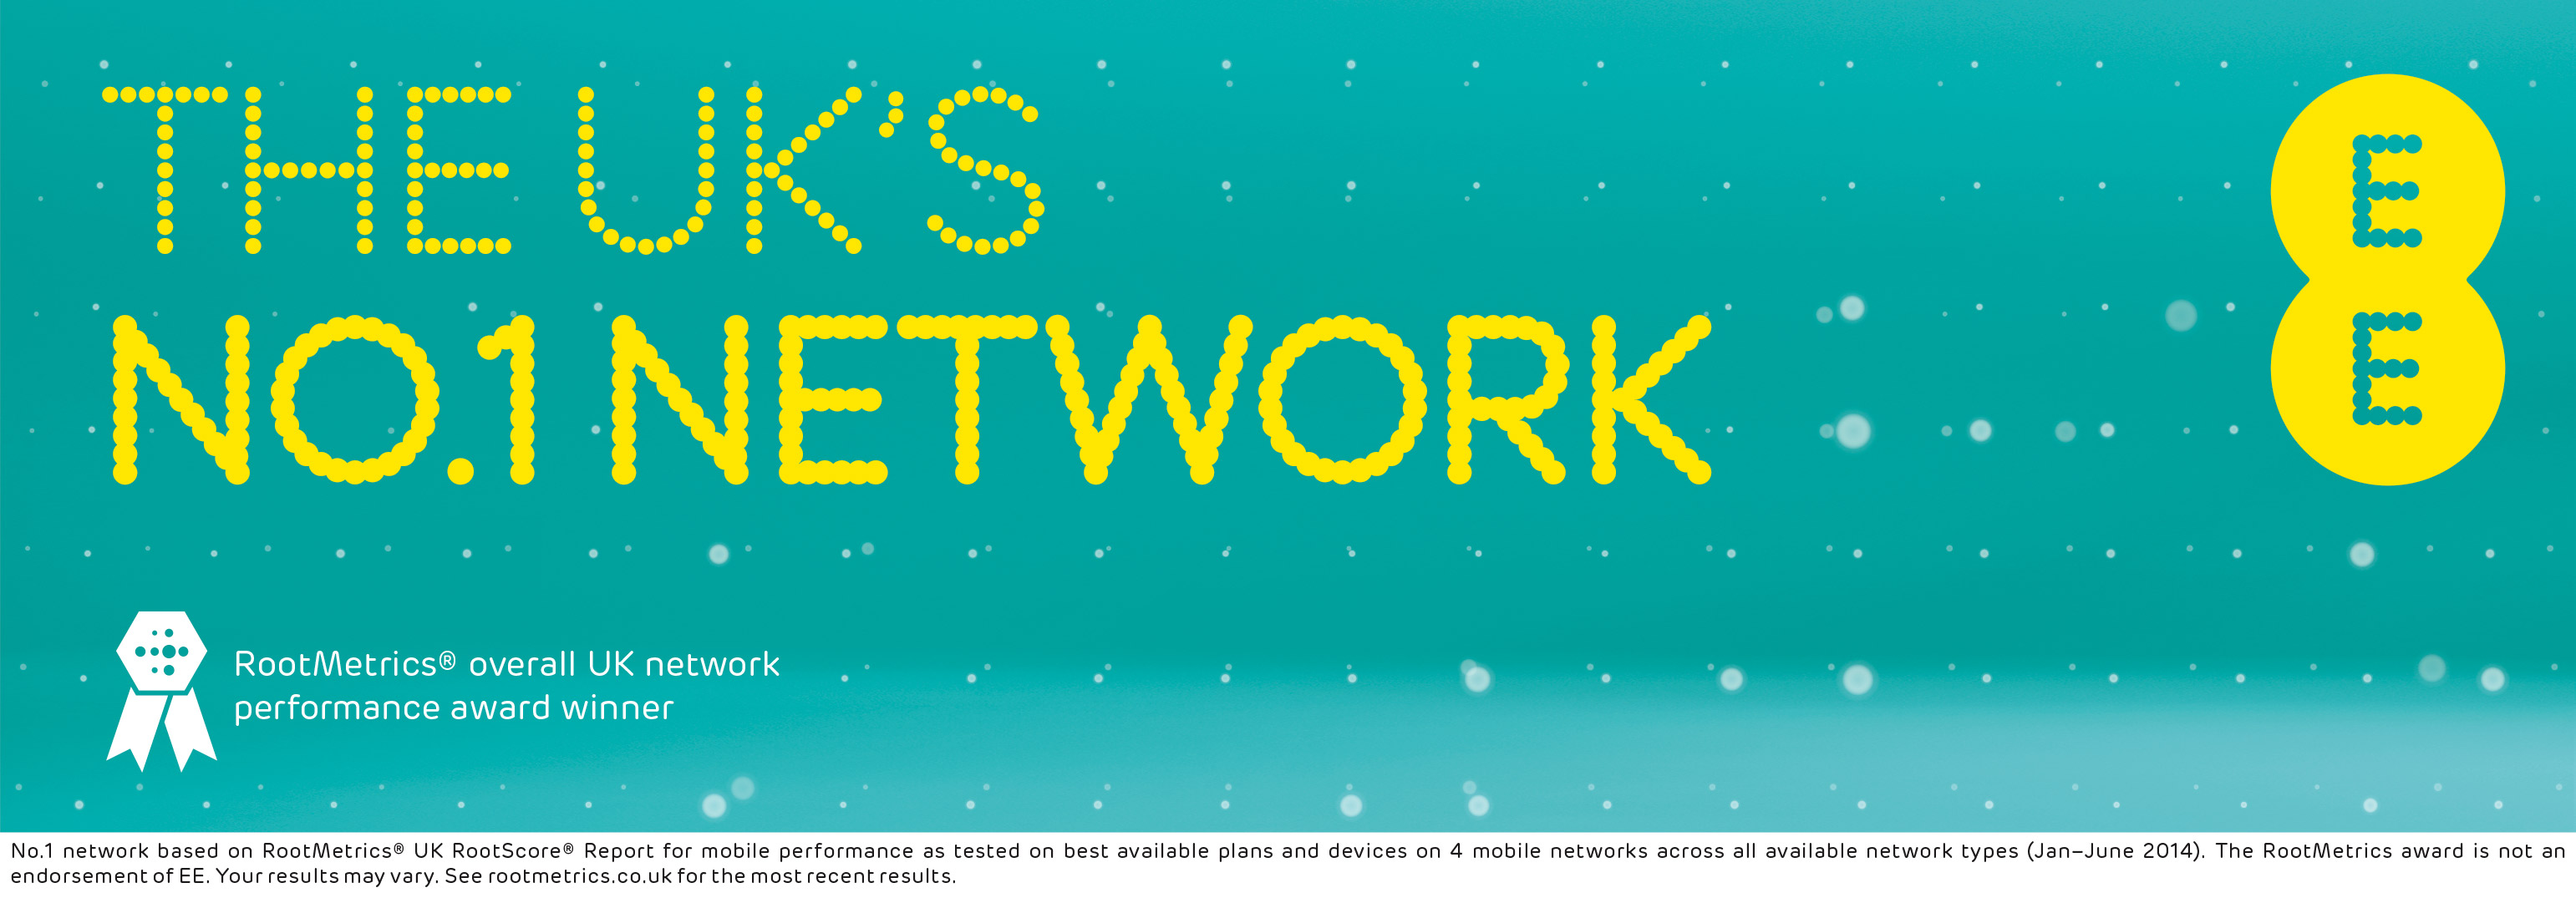 EE - The UK's Number 1 Network